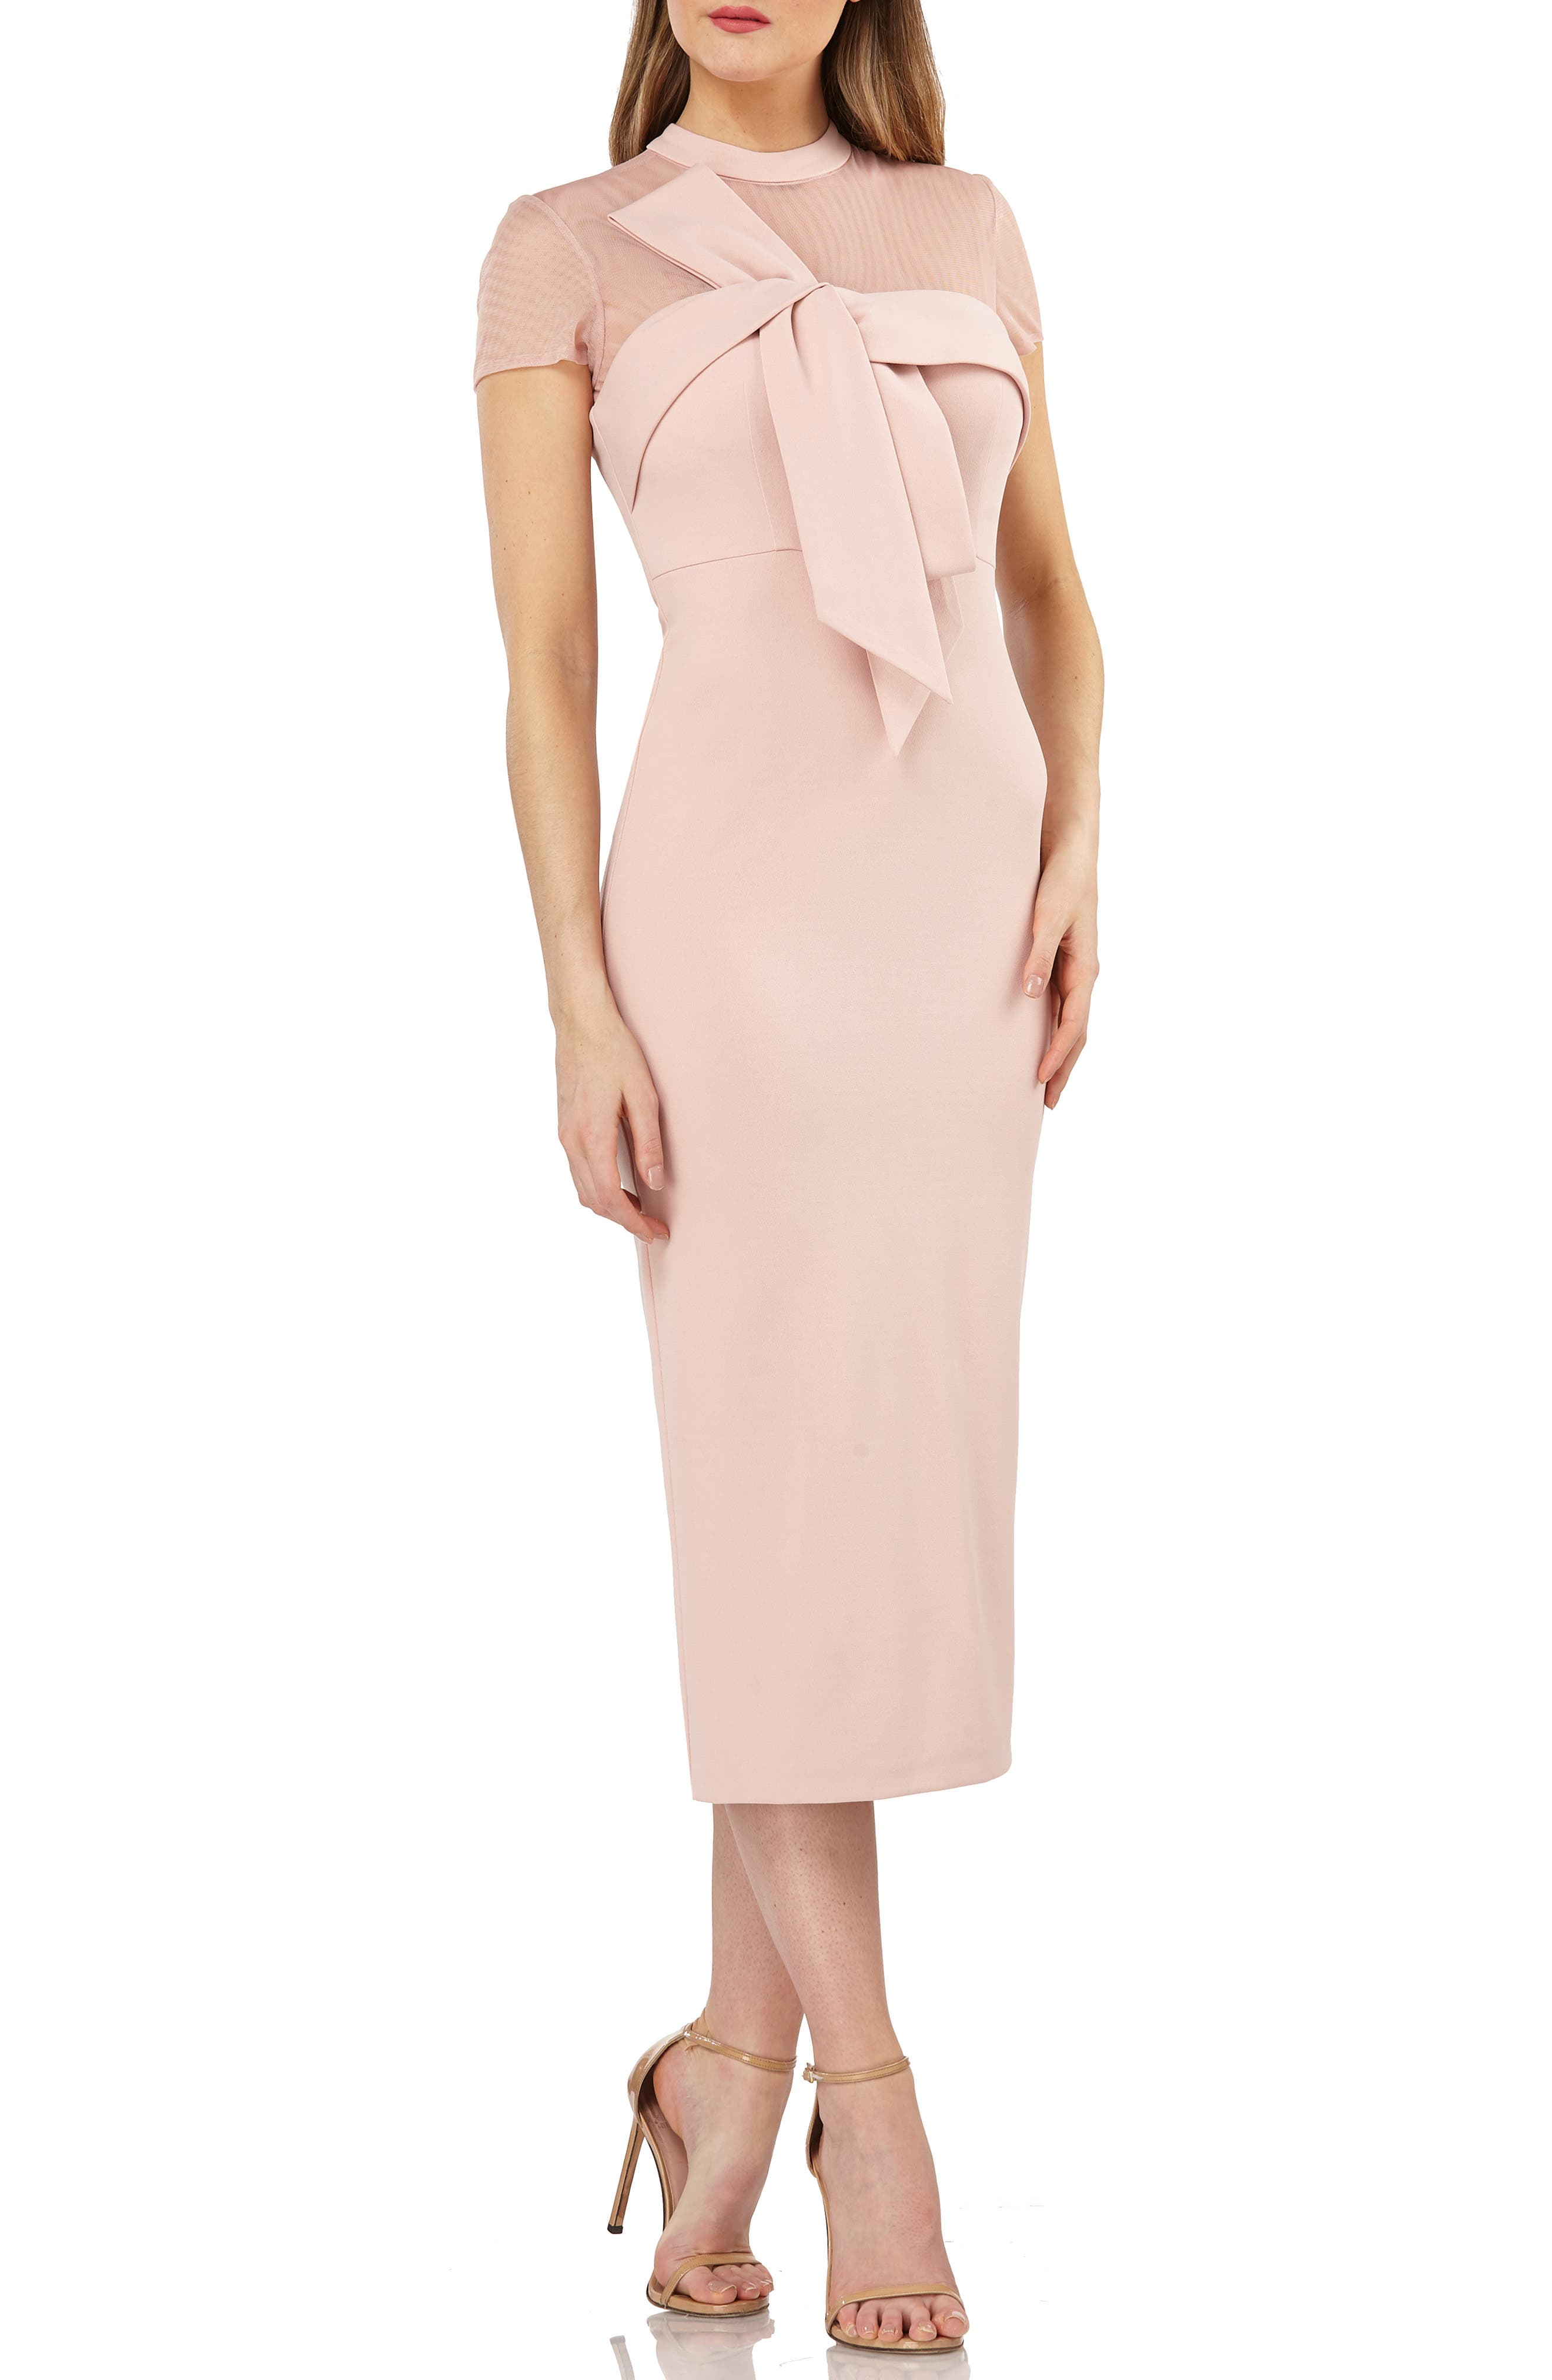 1950s Cocktail Dresses, Party Dresses Womens Js Collections Stretch Crepe Midi Dress Size 2 - Pink $178.00 AT vintagedancer.com